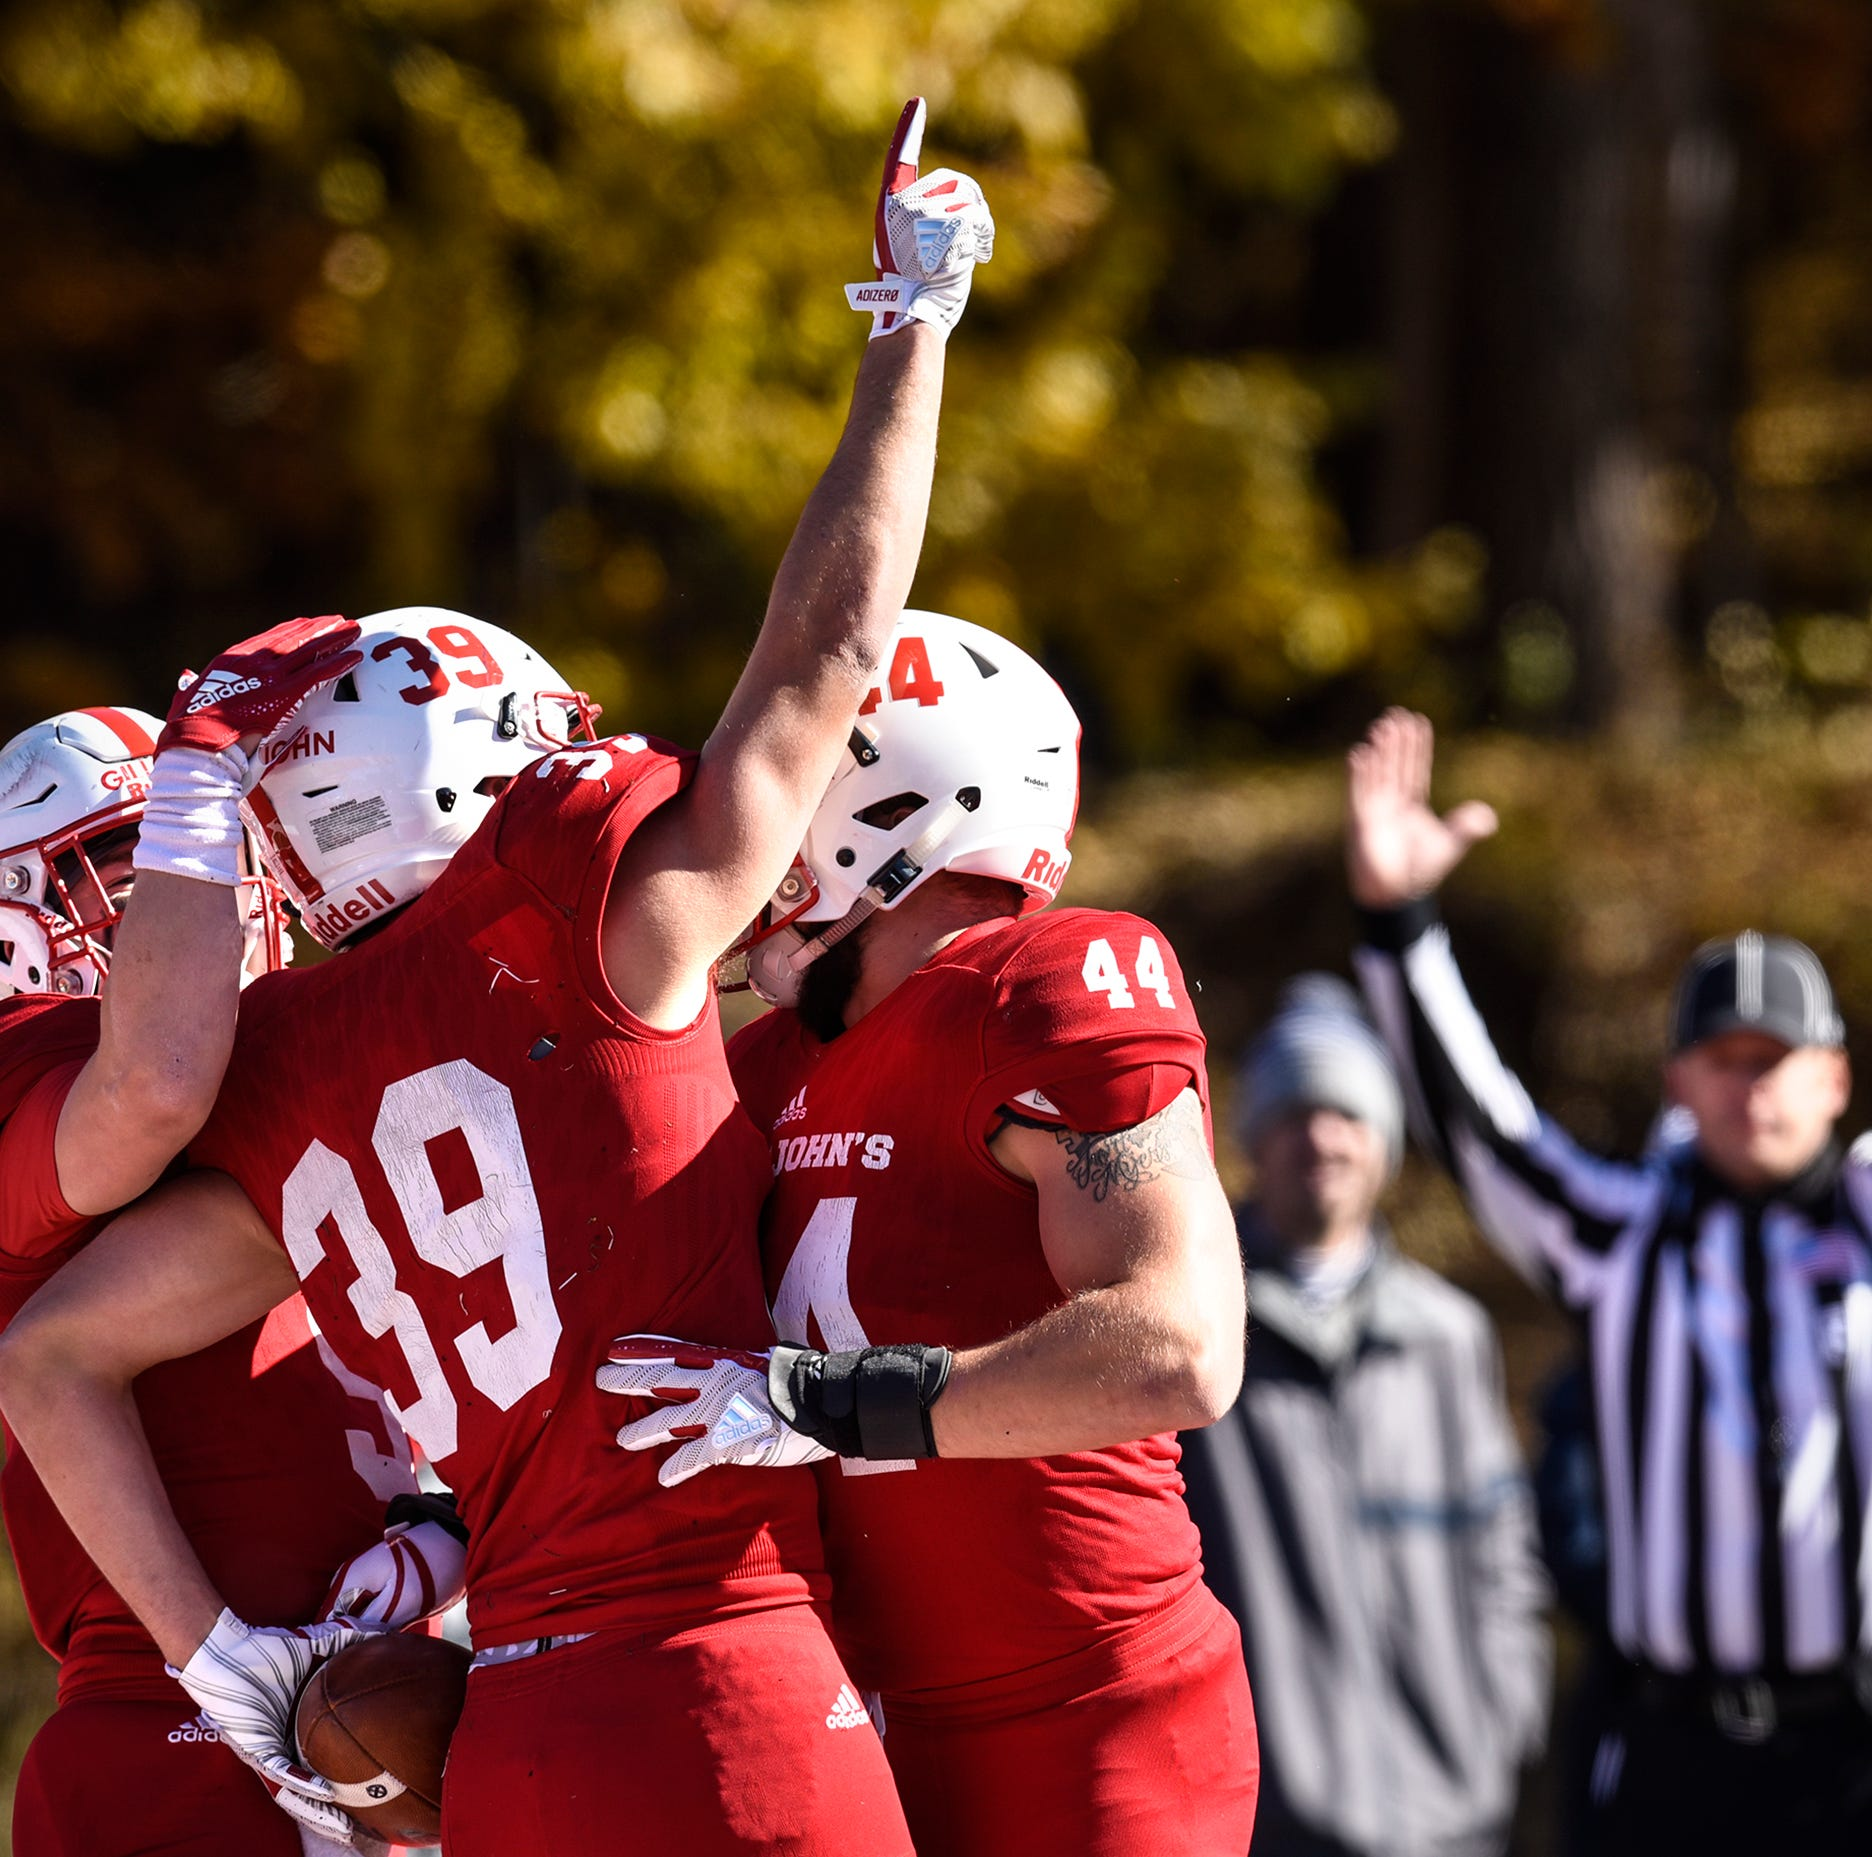 Tommy Auger raises his hand skyward after scoring a touchdown during the first half of the Saturday, Oct. 20, game against St. Olaf at Clemens Stadium in Collegeville